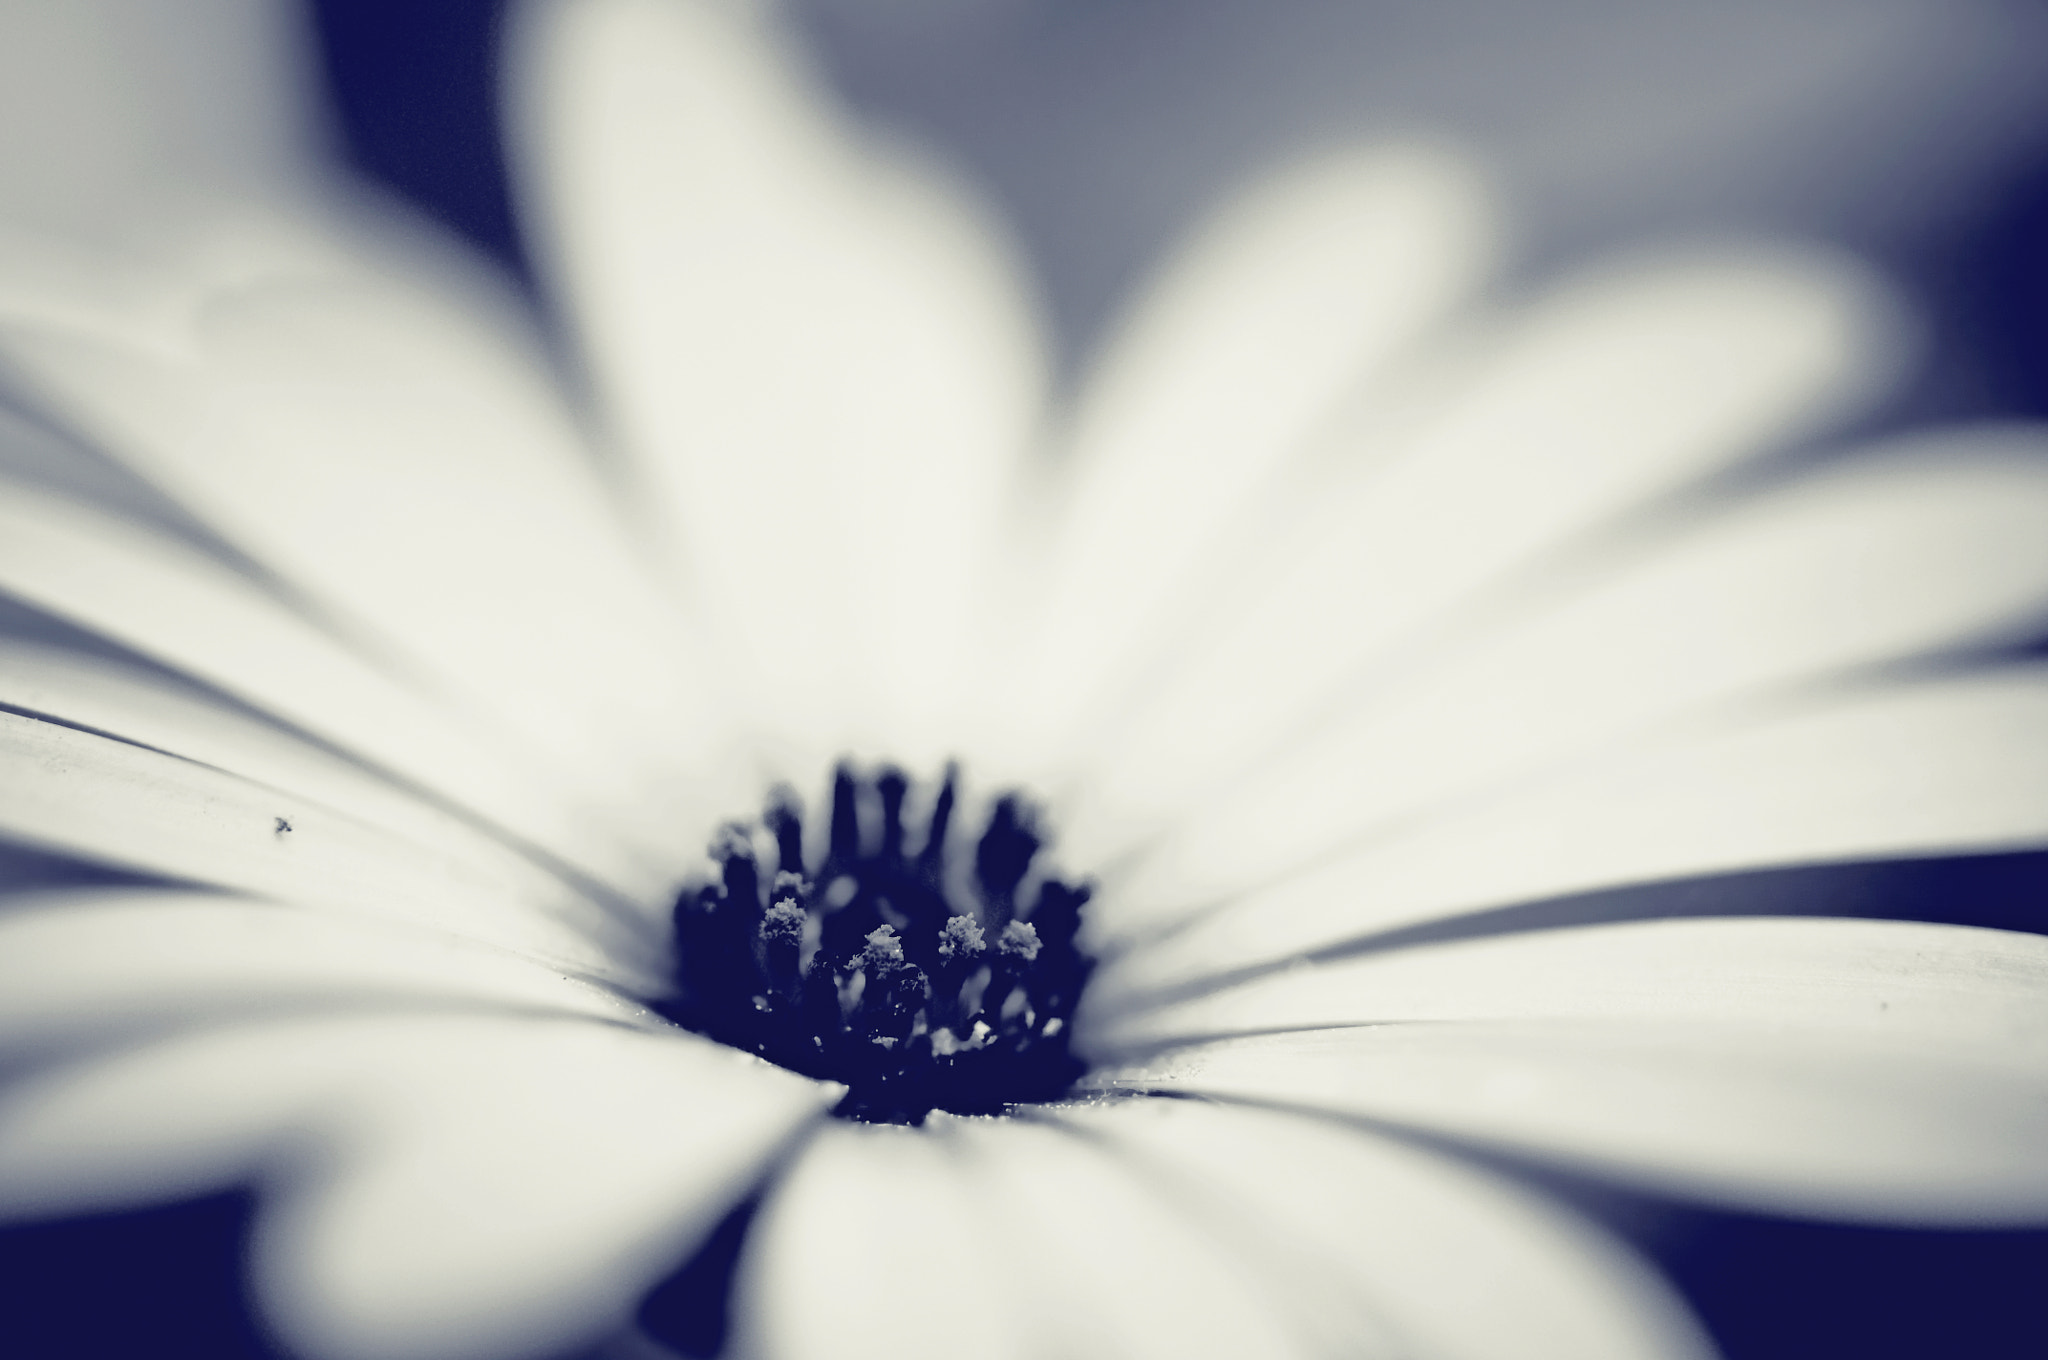 Photograph 20090425_162932A_Floral by Donavon Yelton on 500px